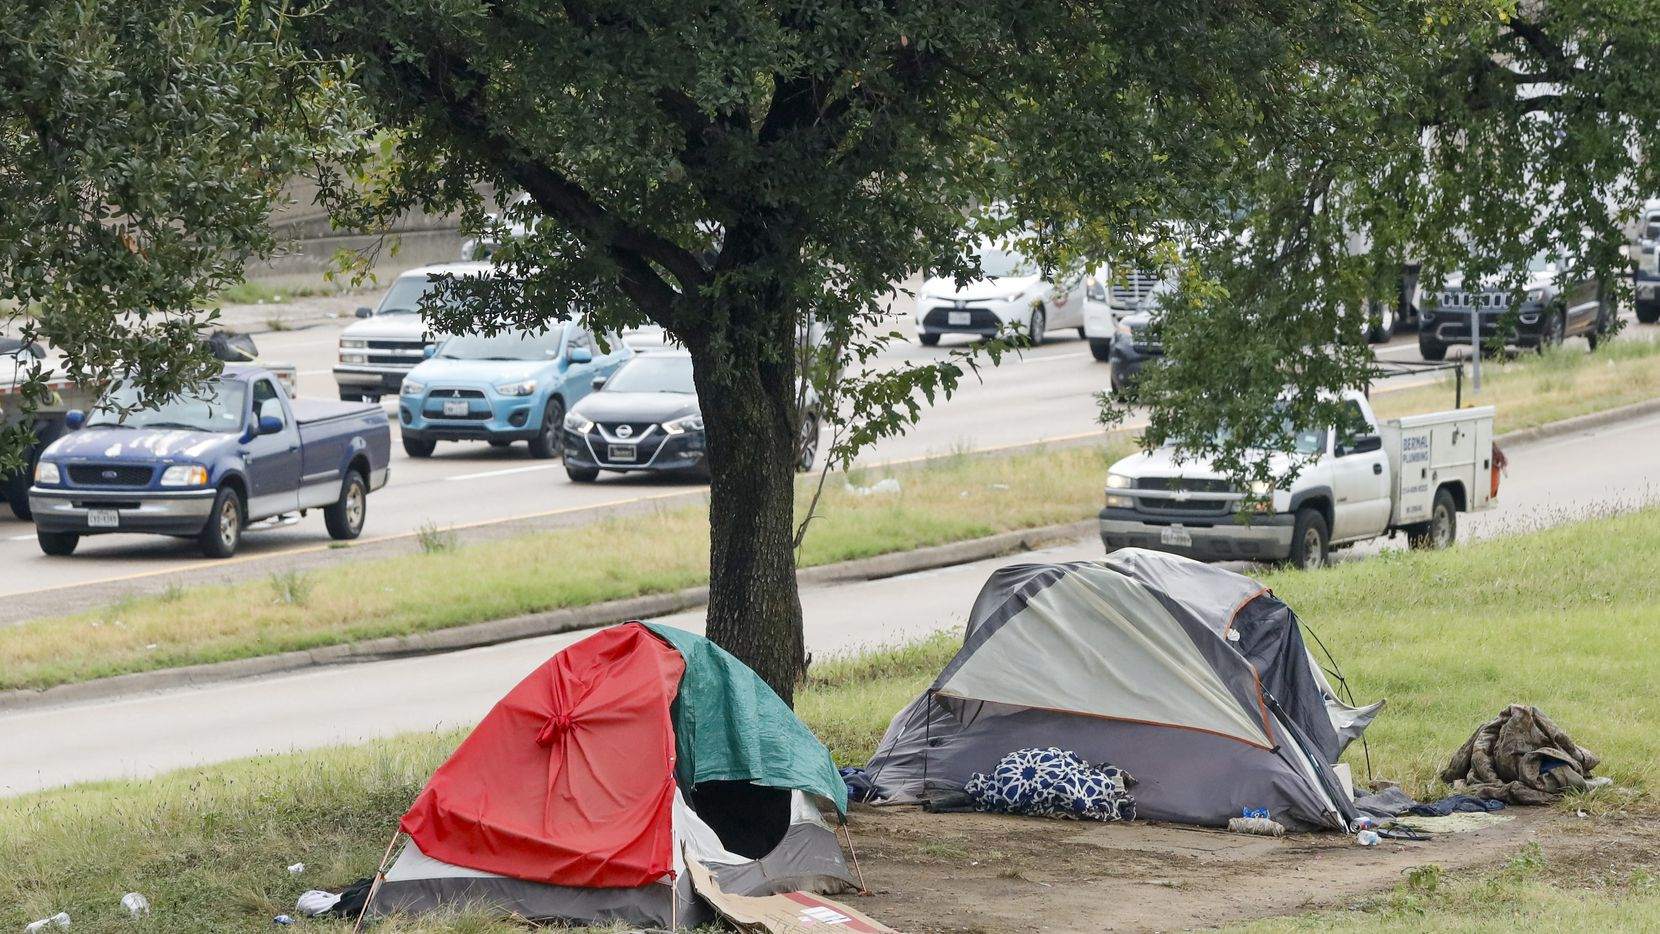 Tents served as makeshift housing against the rain alongside Interstate 30 near downtown Dallas. The City Council will vote Aug. 25 on whether to allocate federal funds to provide permanent housing options.